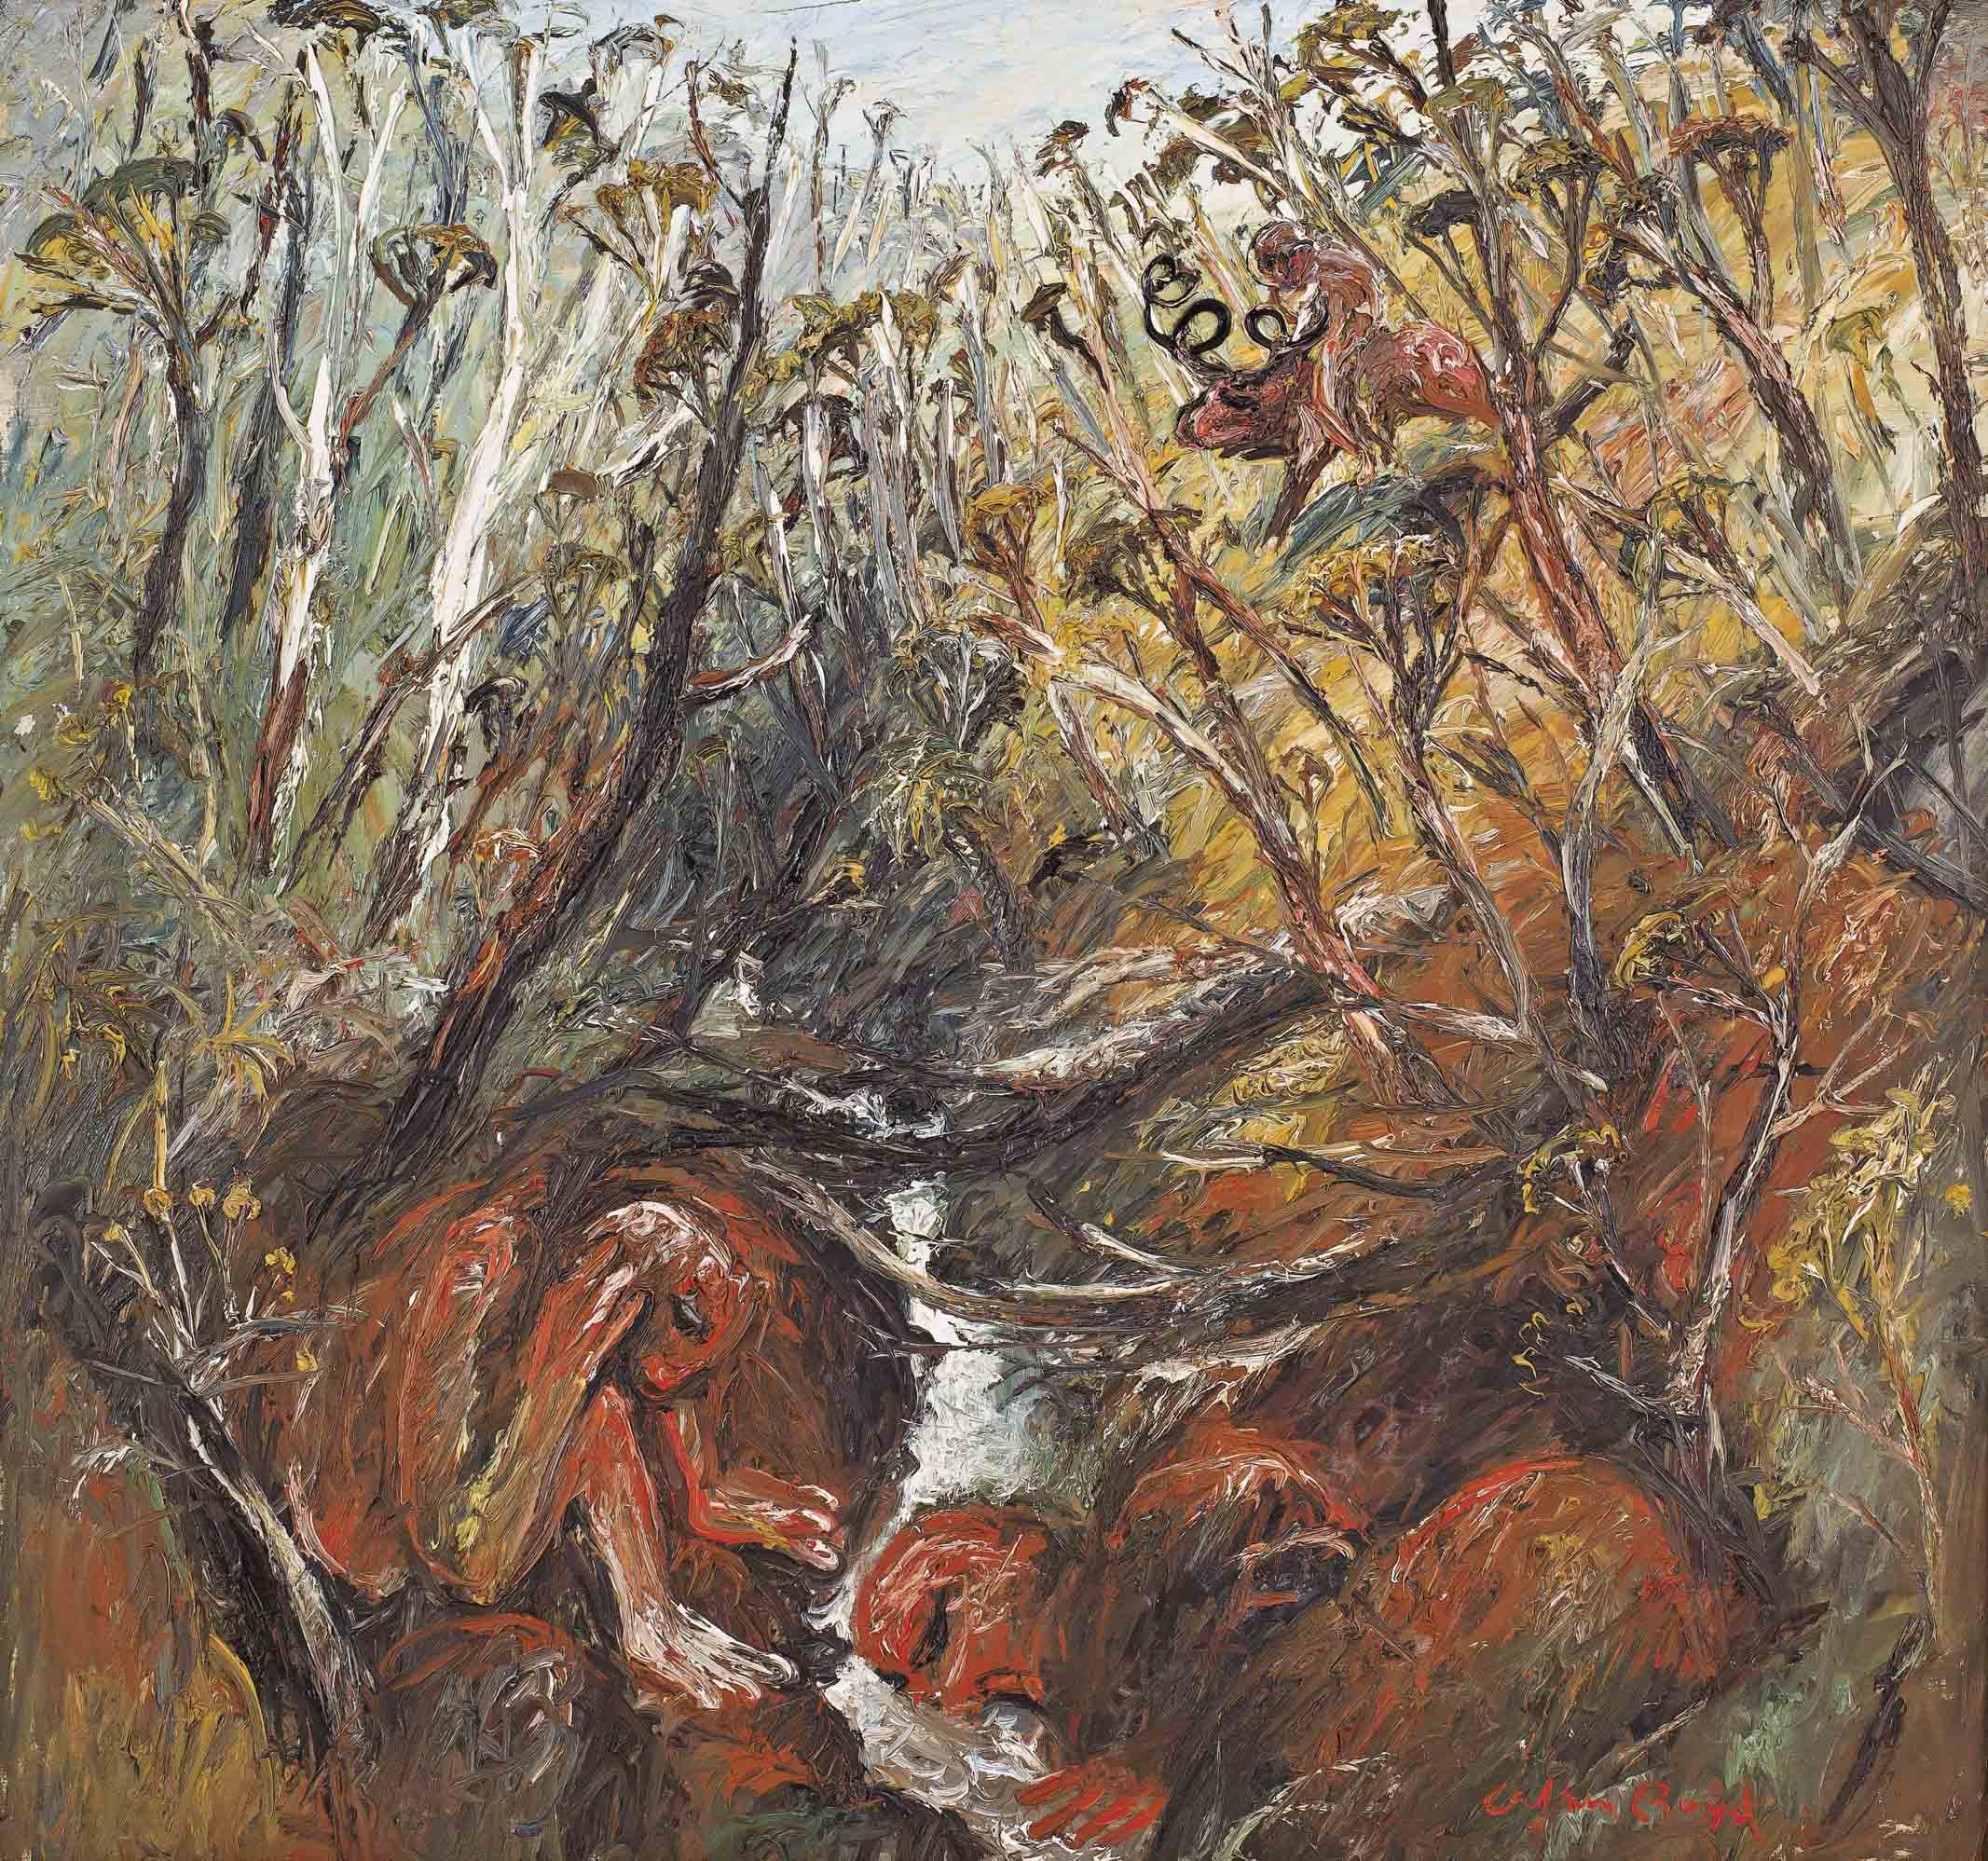 Hunter by a creek (1966)